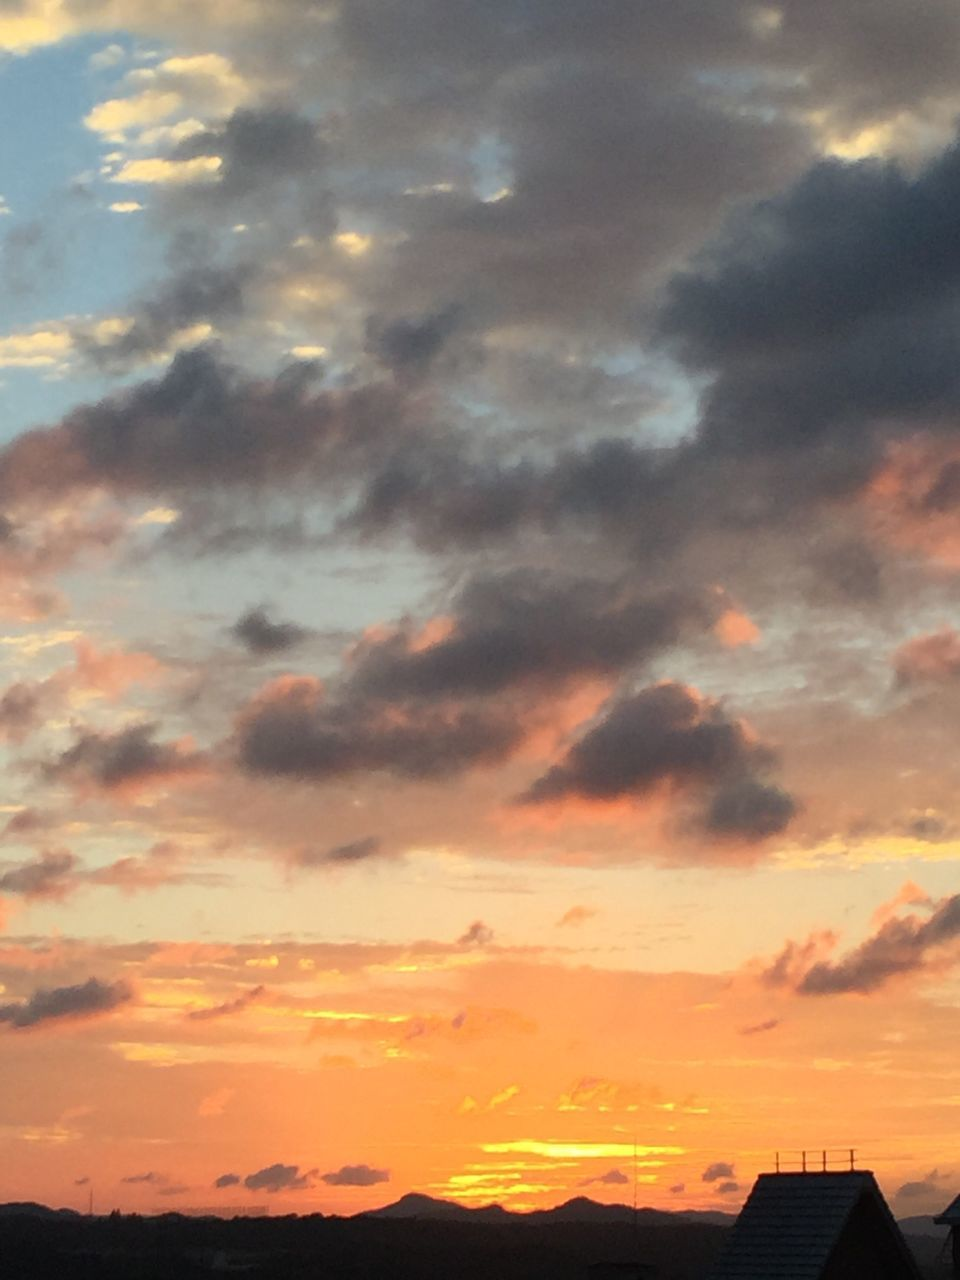 sunset, sky, no people, nature, beauty in nature, architecture, outdoors